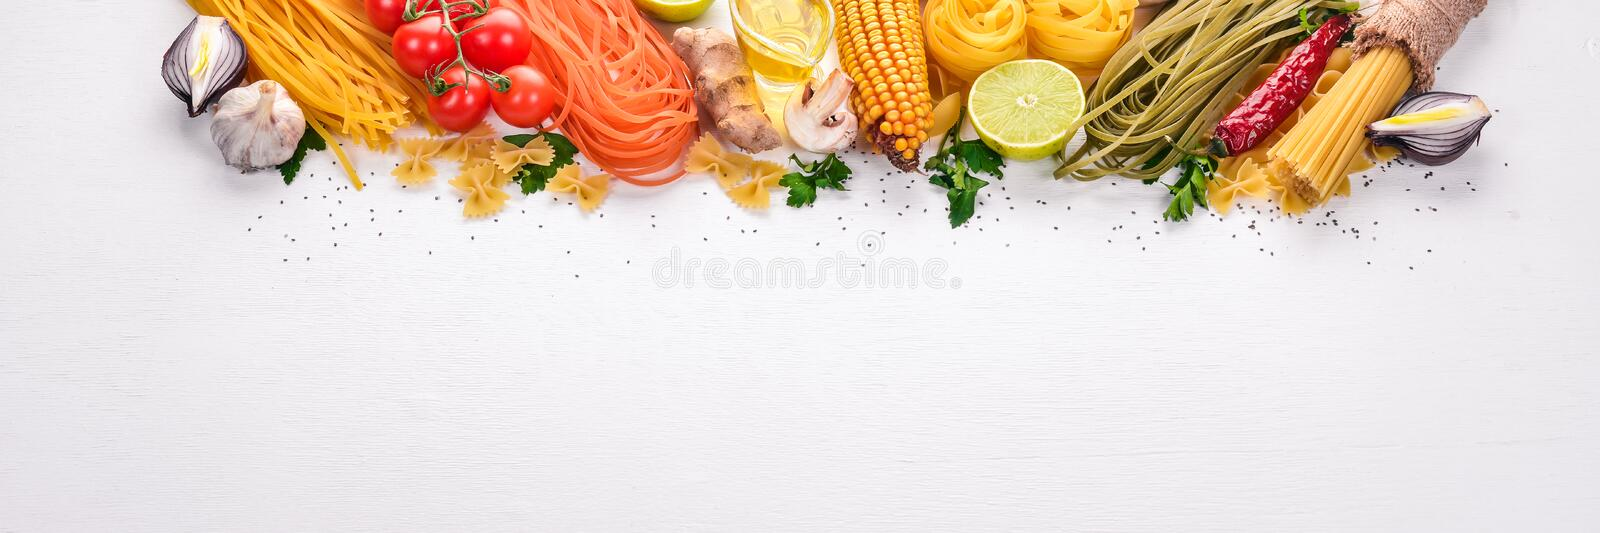 Set of pasta, noodles, spaghetti. Italian cooking, fresh vegetables and spices. On a white background. Top view. Copy space royalty free stock photography